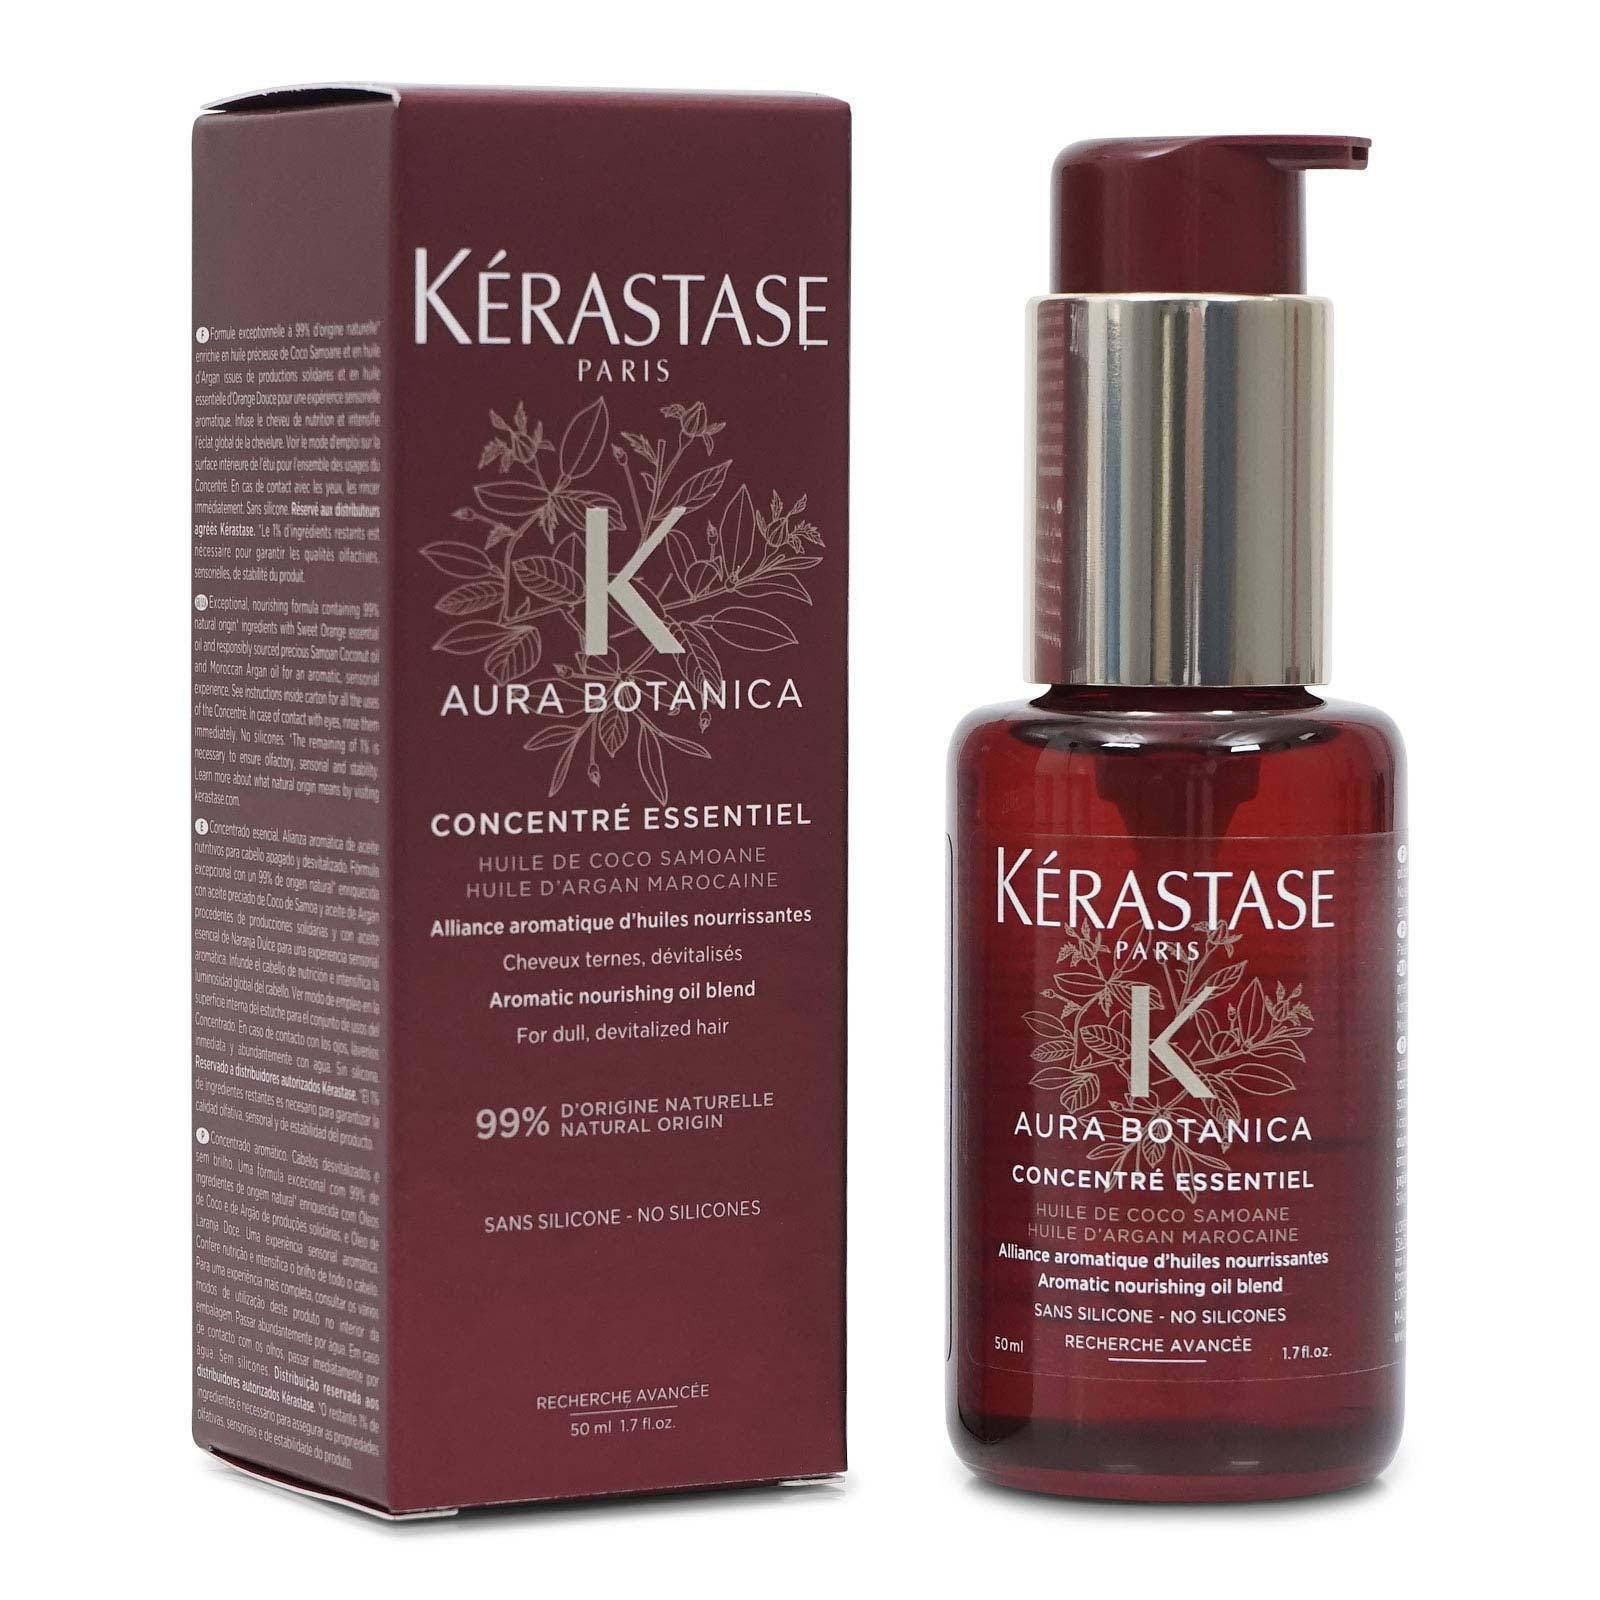 Kerastase Aura Botanica Concentre Essentiel Nourishing Oil Blend